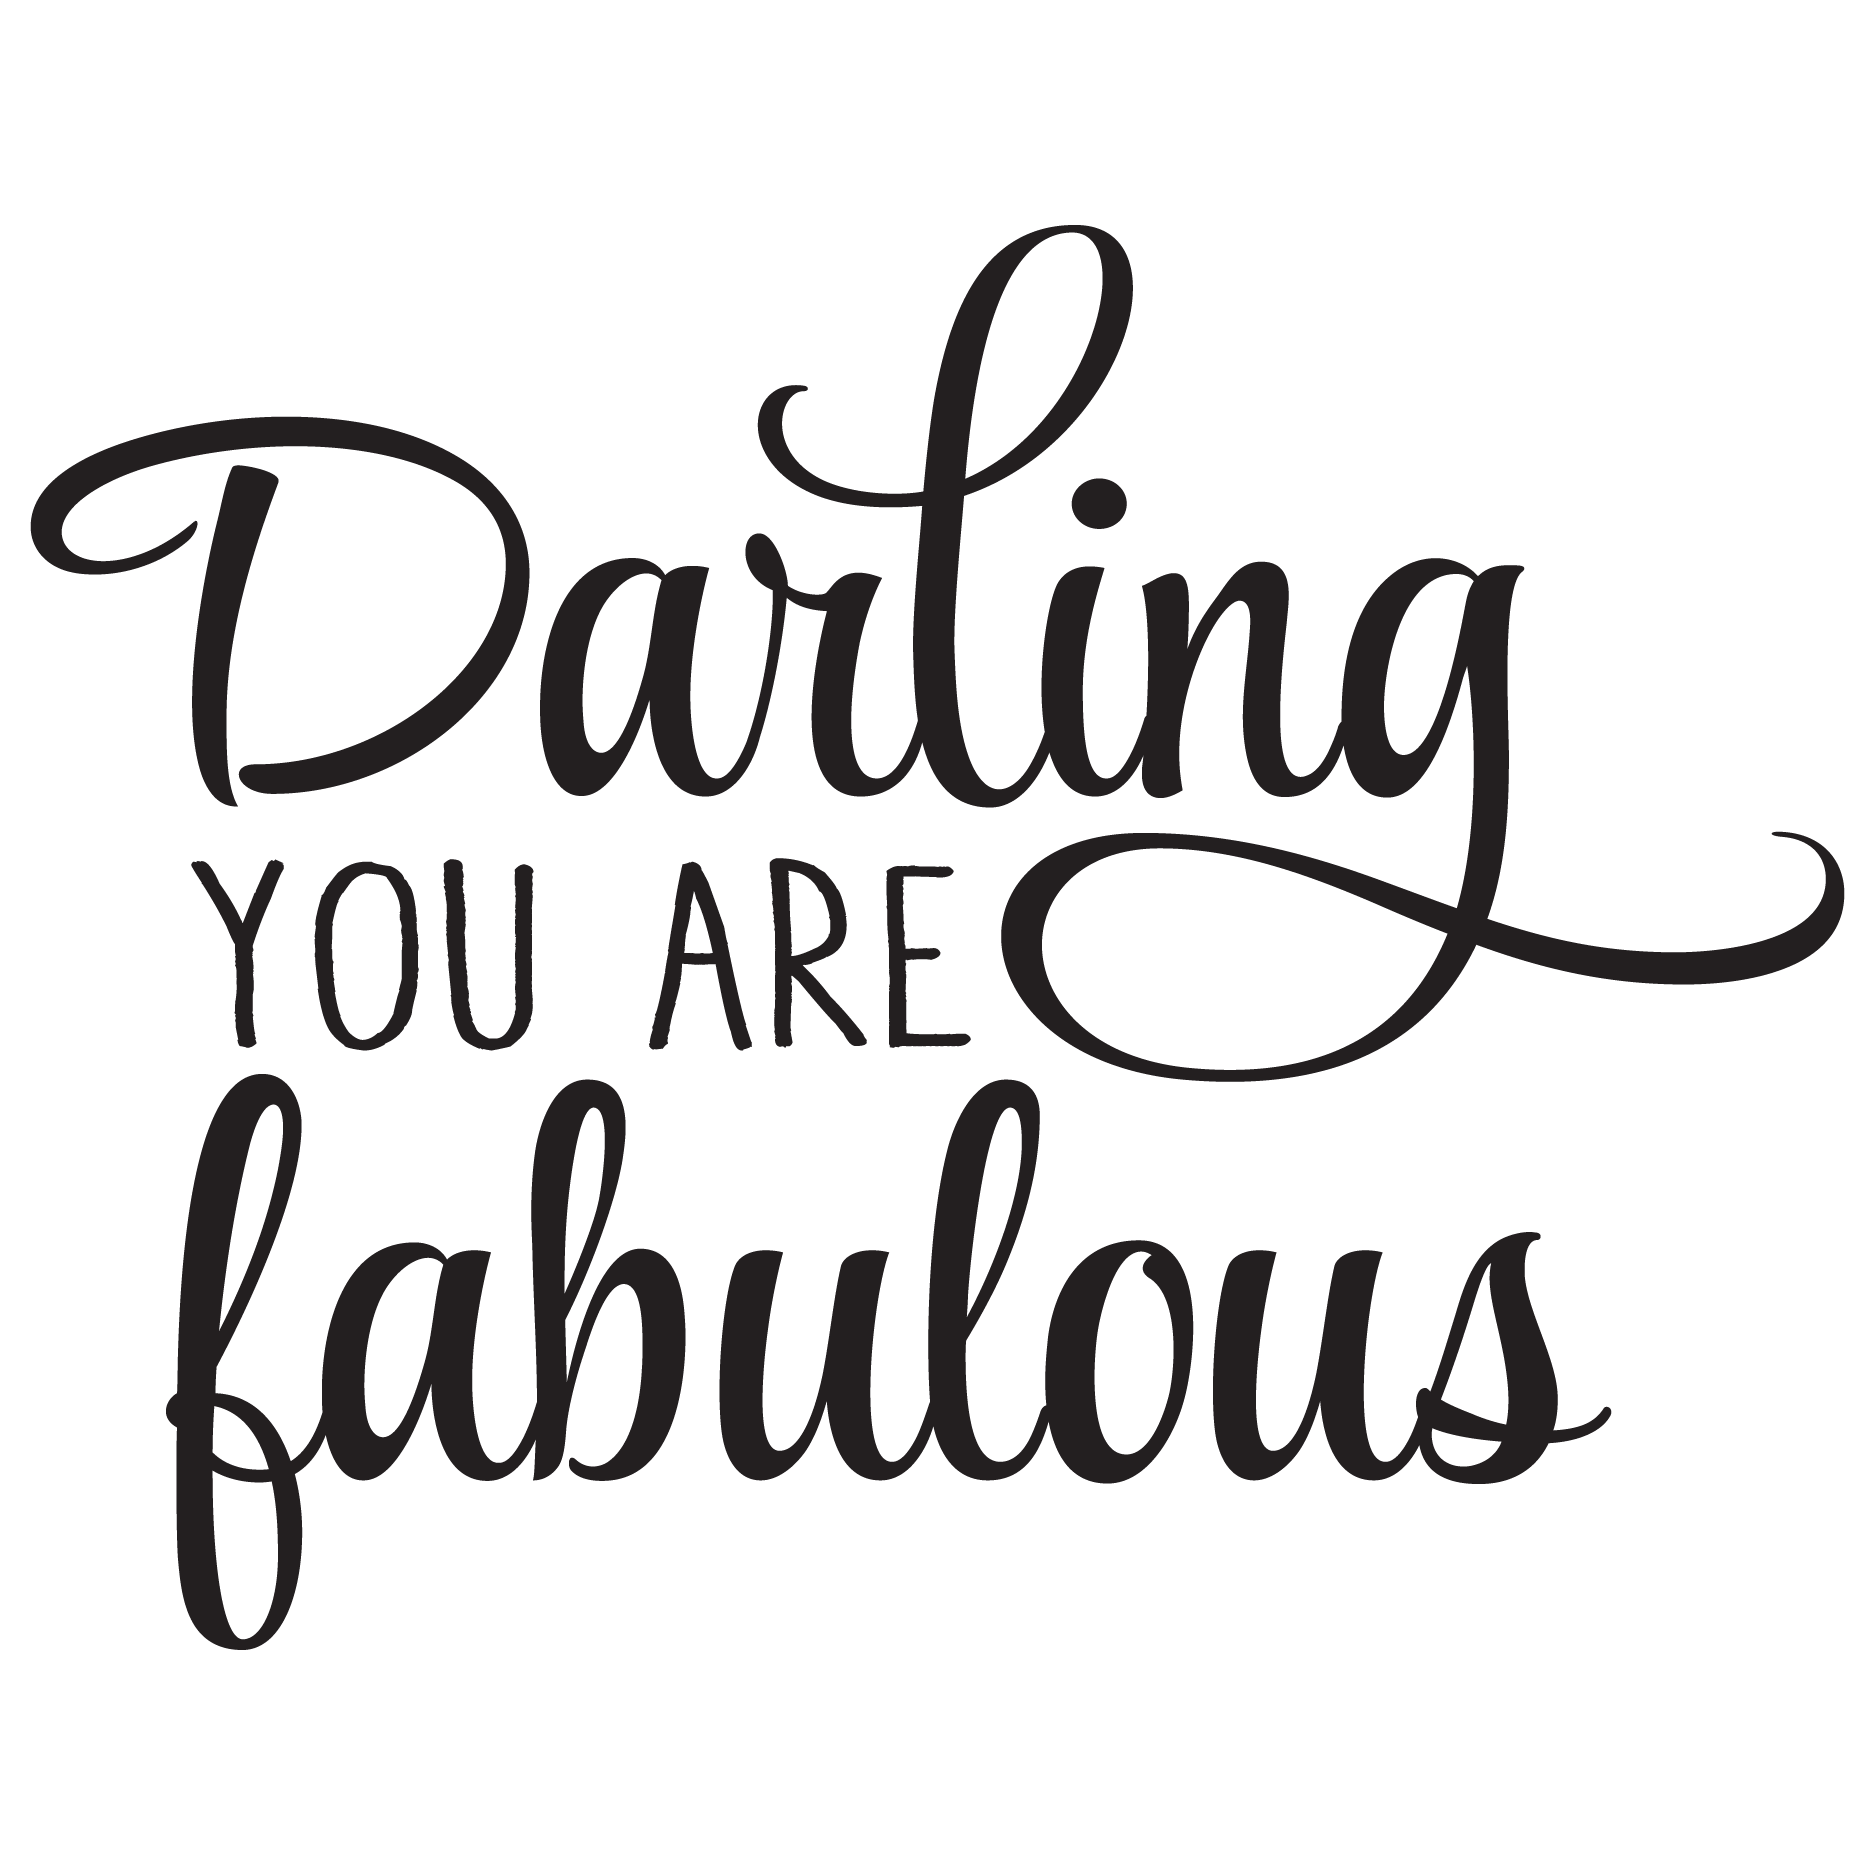 Dodge Quotes Darling You Are Fabulous Wall Quotes™ Decal  Wallquotes